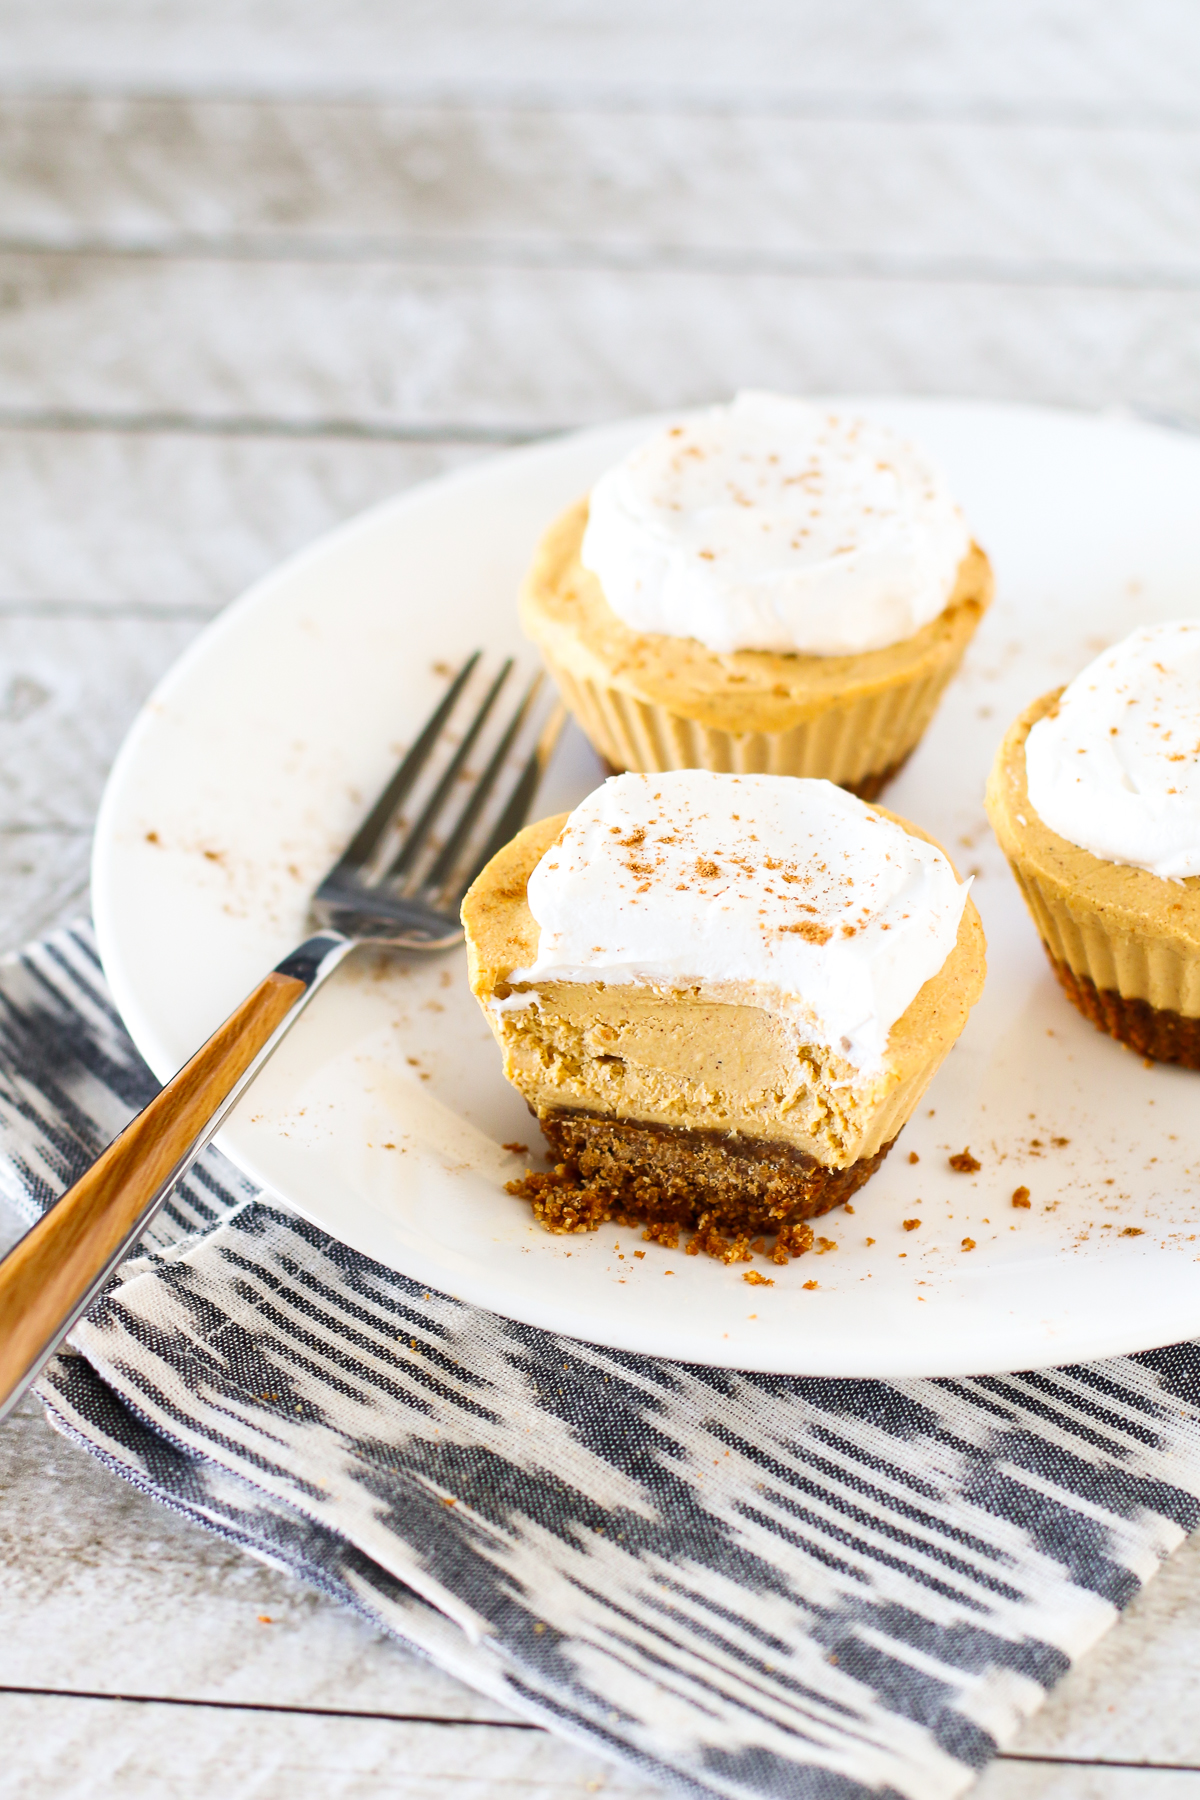 Gluten Free Vegan Mini Pumpkin Cheesecakes. Creamy cashew-based cheesecakes with pumpkin and all the fall spices.